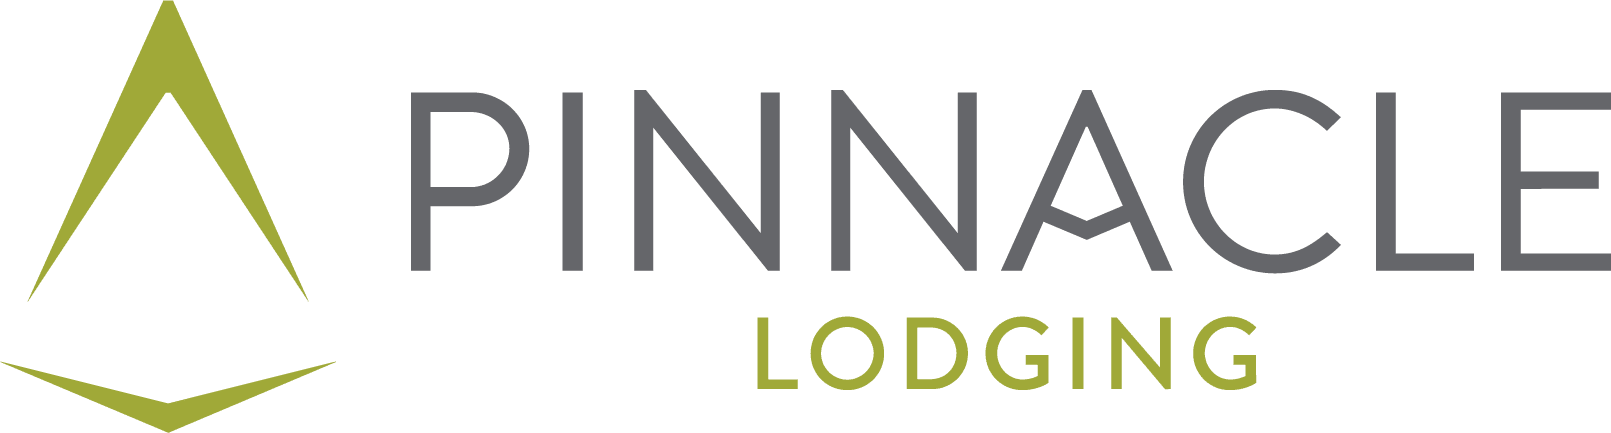 Pinnacle Lodging